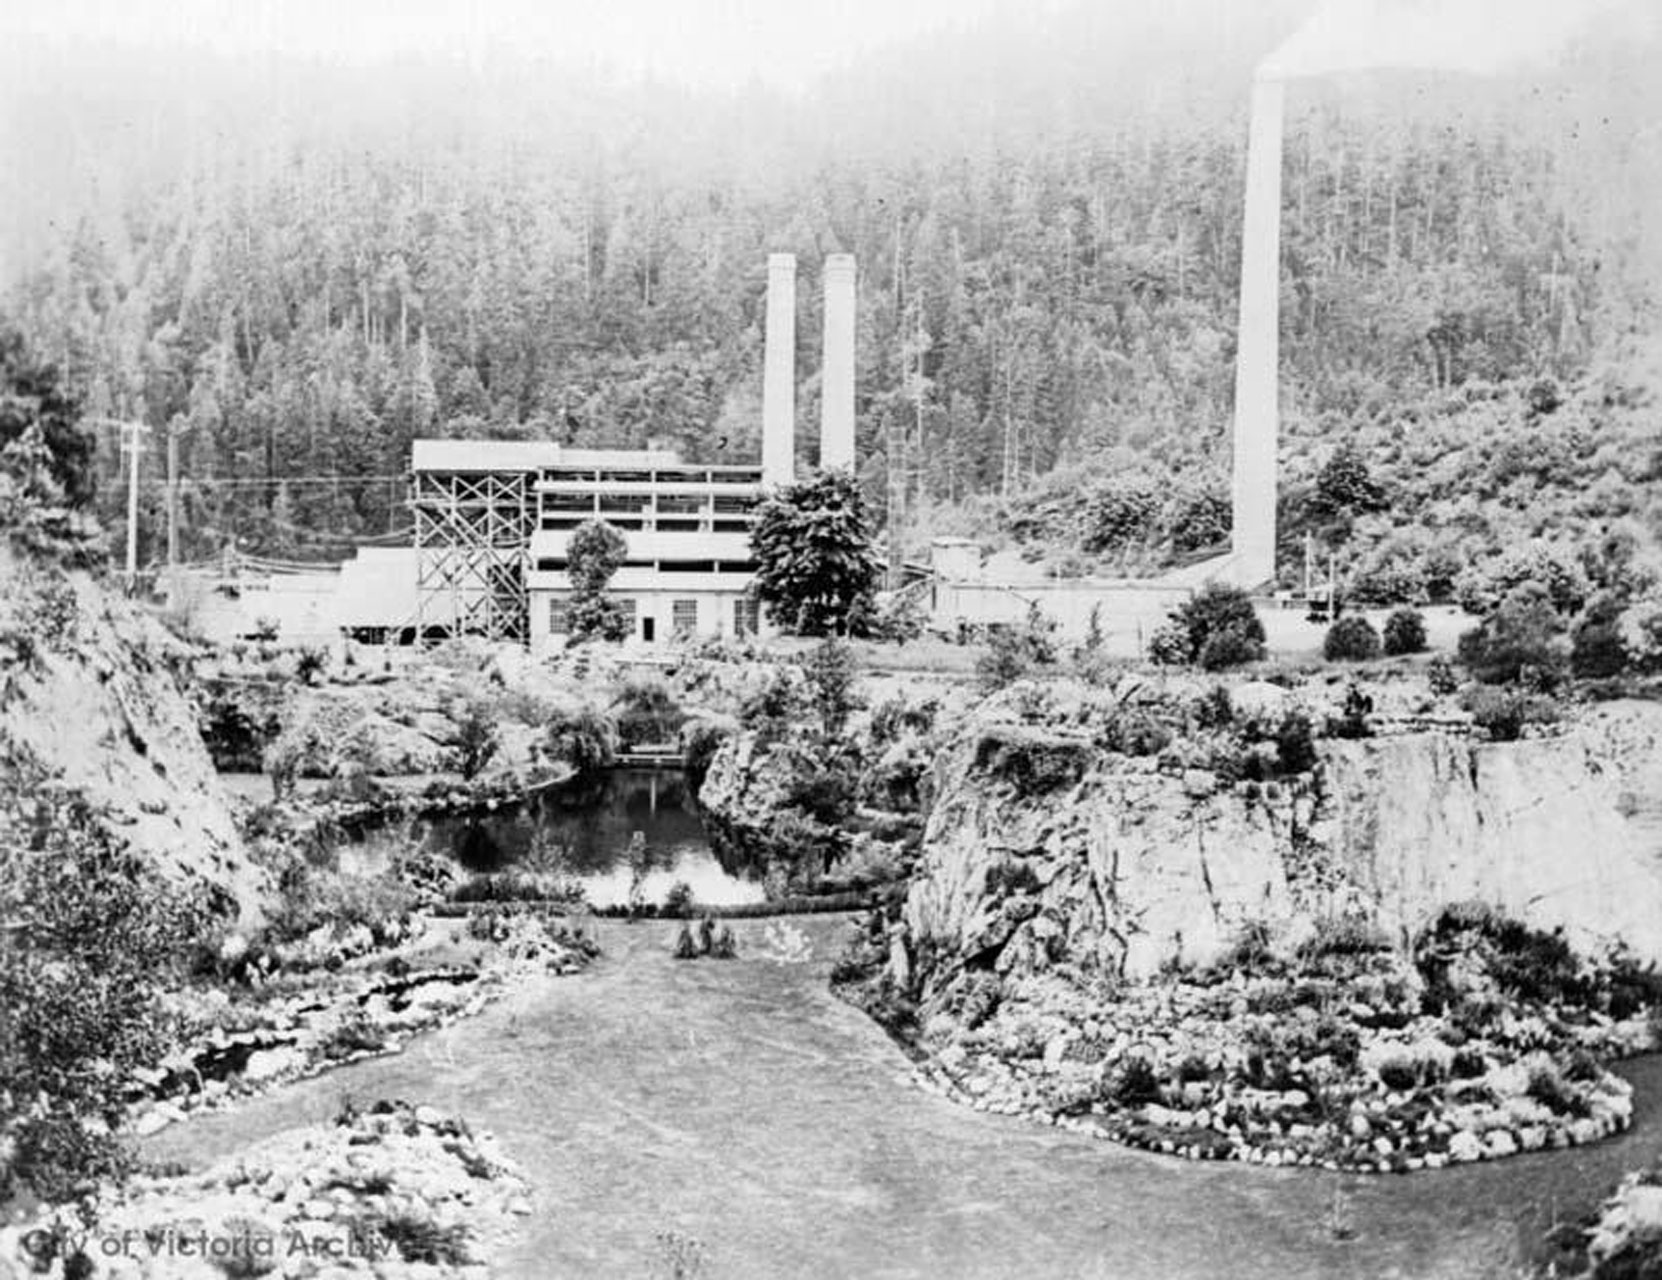 The Vancouver Portland Cement Company plant above the Sunken Garden, the Mound and the Trout Pond, circa 1919 (City of Victoria Archives photo M00805)